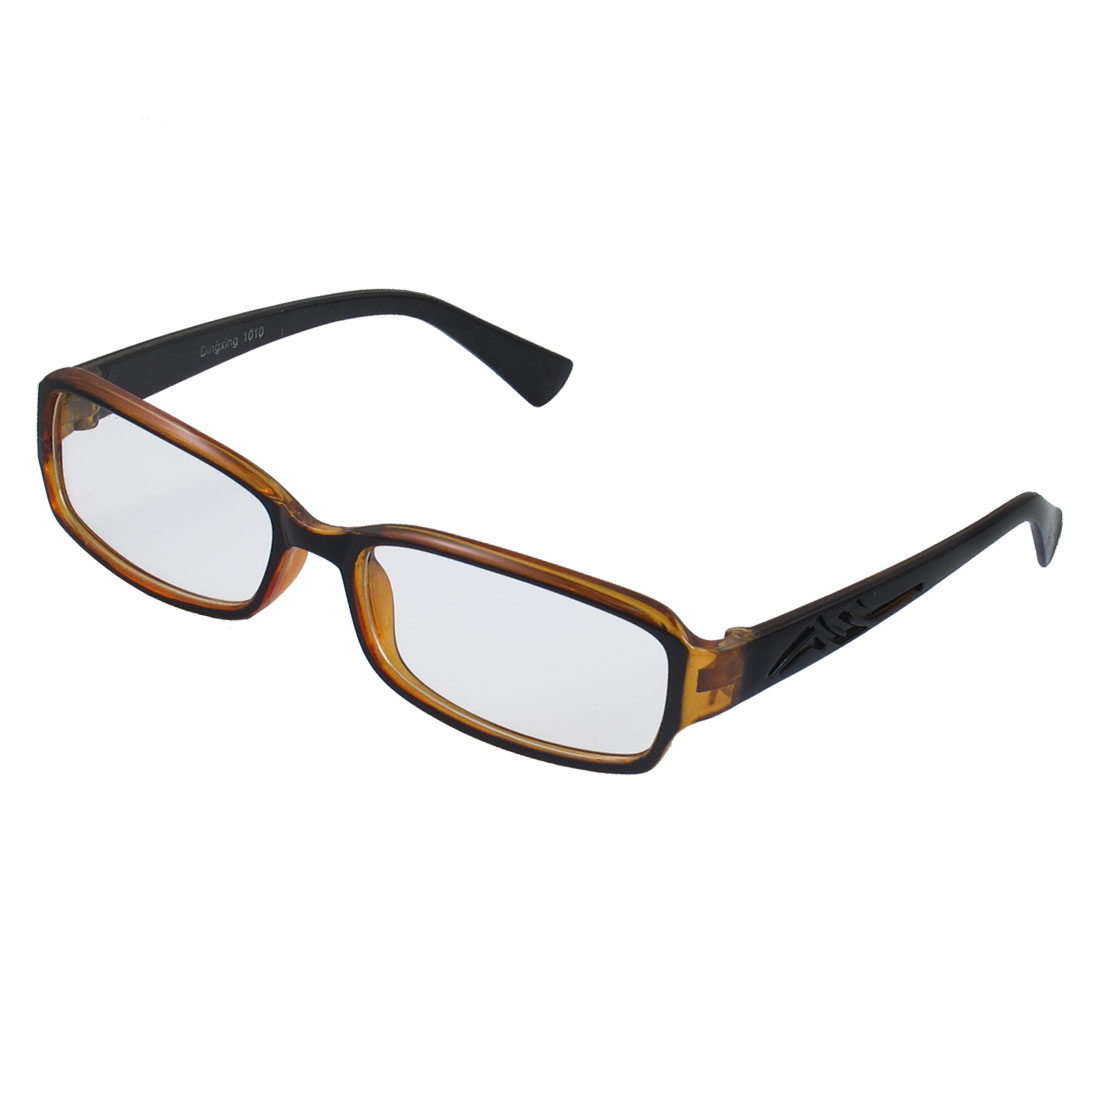 Lady Black Brown Full Frame Carved Arm Plain Plano Eyeglass